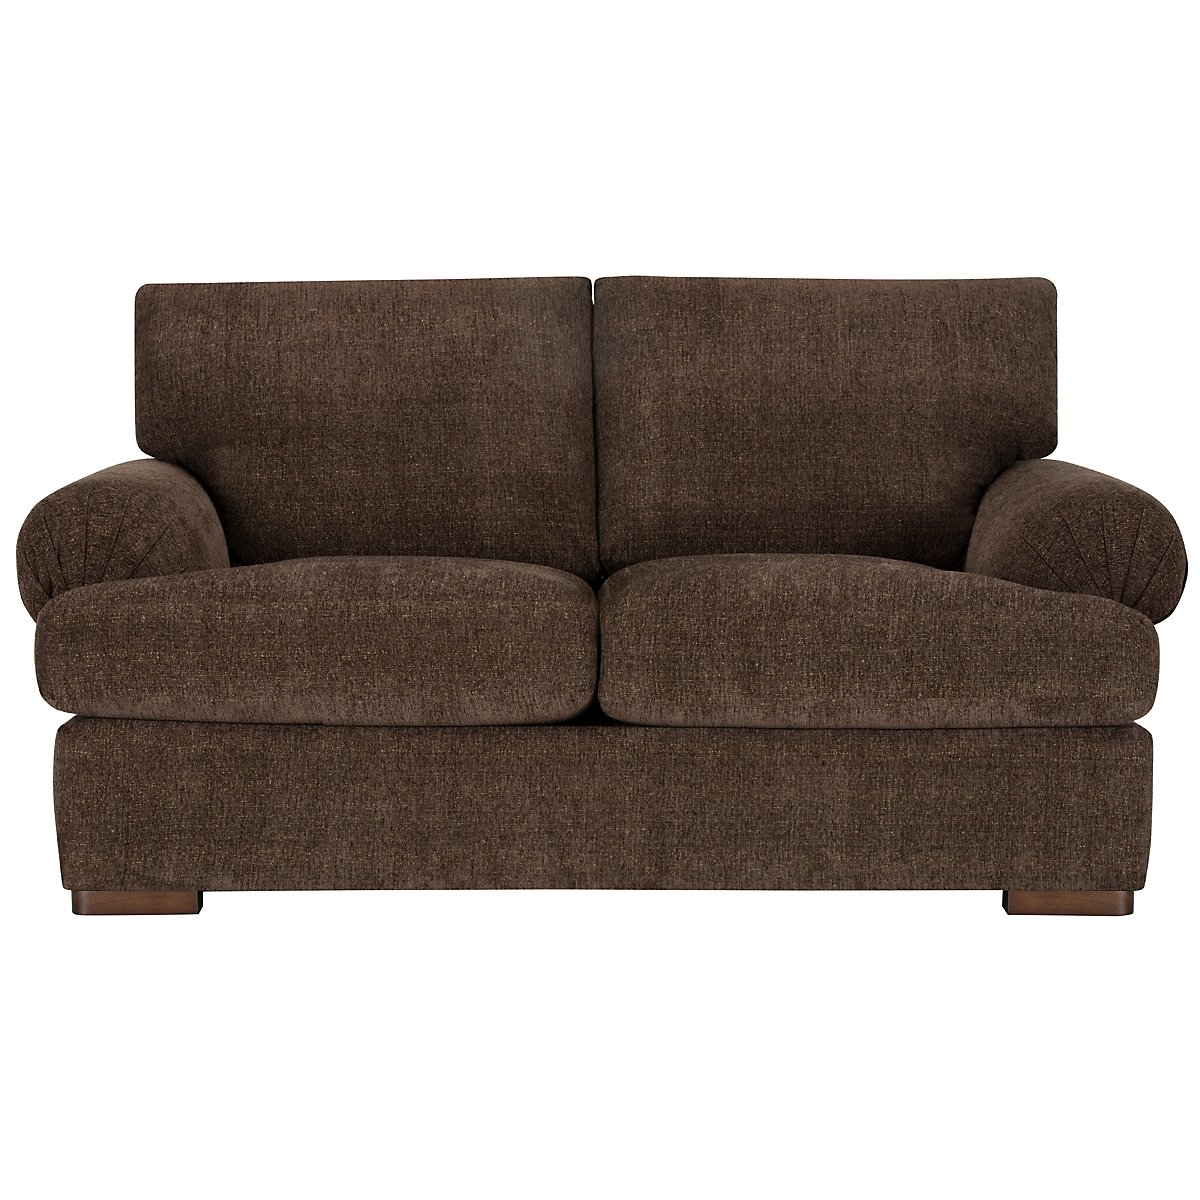 City furniture belair dk brown microfiber loveseat Brown microfiber couch and loveseat